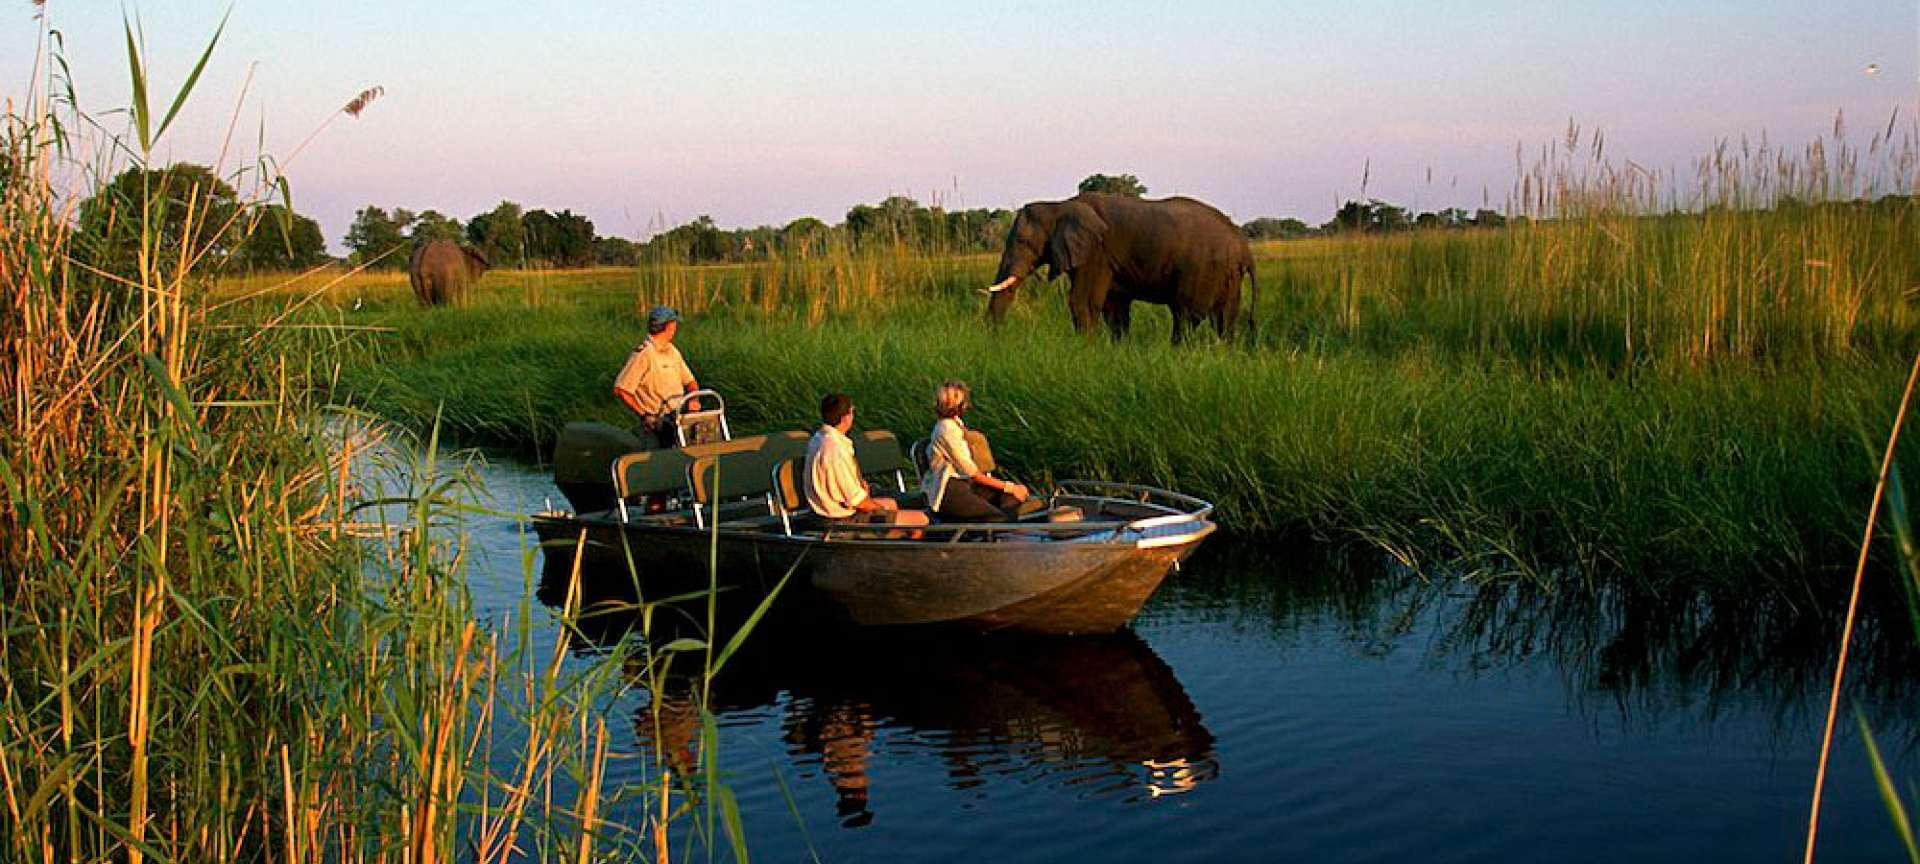 Elephant herds are plentiful in Botswana